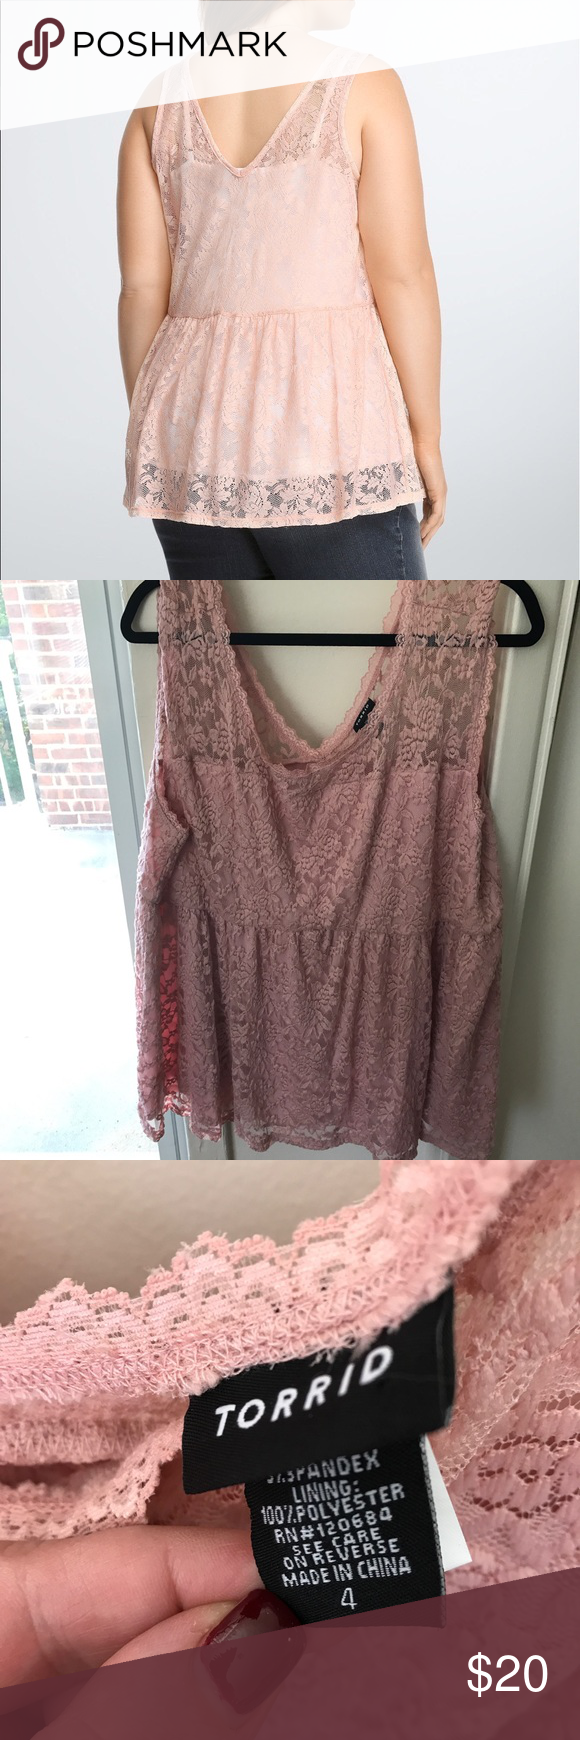 Baby pink plus size dress Torrid pink lace peplum top size X Really soft plus size lace